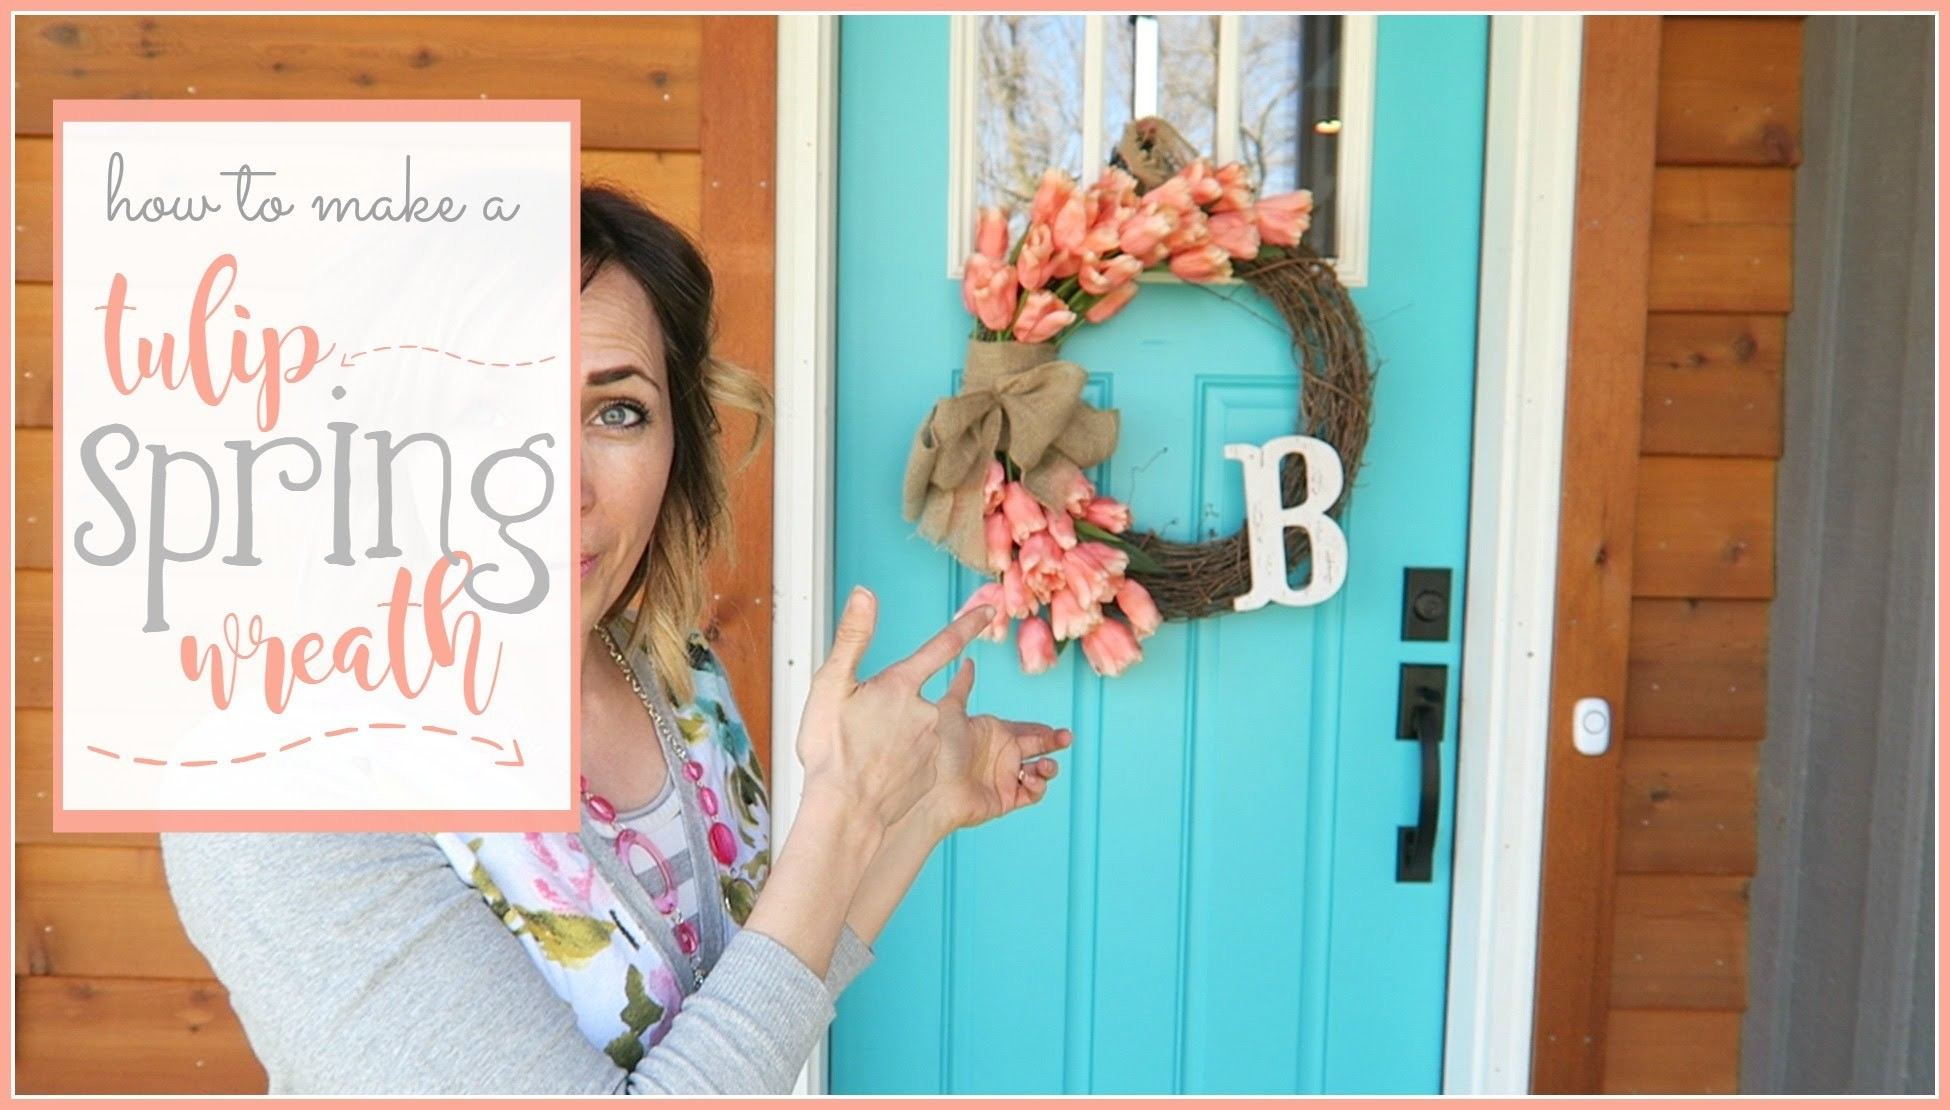 How to make a Tulip Spring Wreath